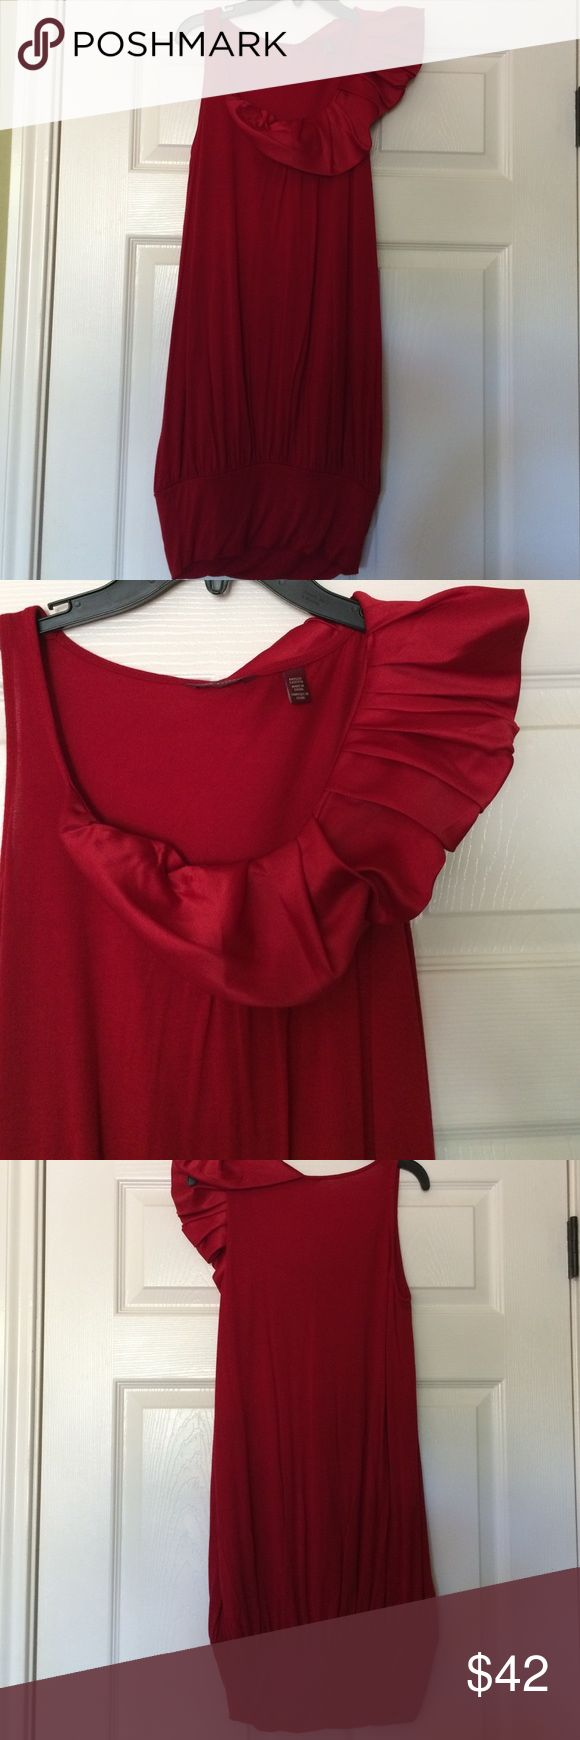 Ted Baker red ruffle dress A lovely and flattering soft jersey dress in crimson. Satin ruffle at shoulder; draped effect to dress with wide fitted hemline. 100% viscose. Machine washable. Ted Baker size 2, which converts to a USA size 6. Ted Baker Dresses